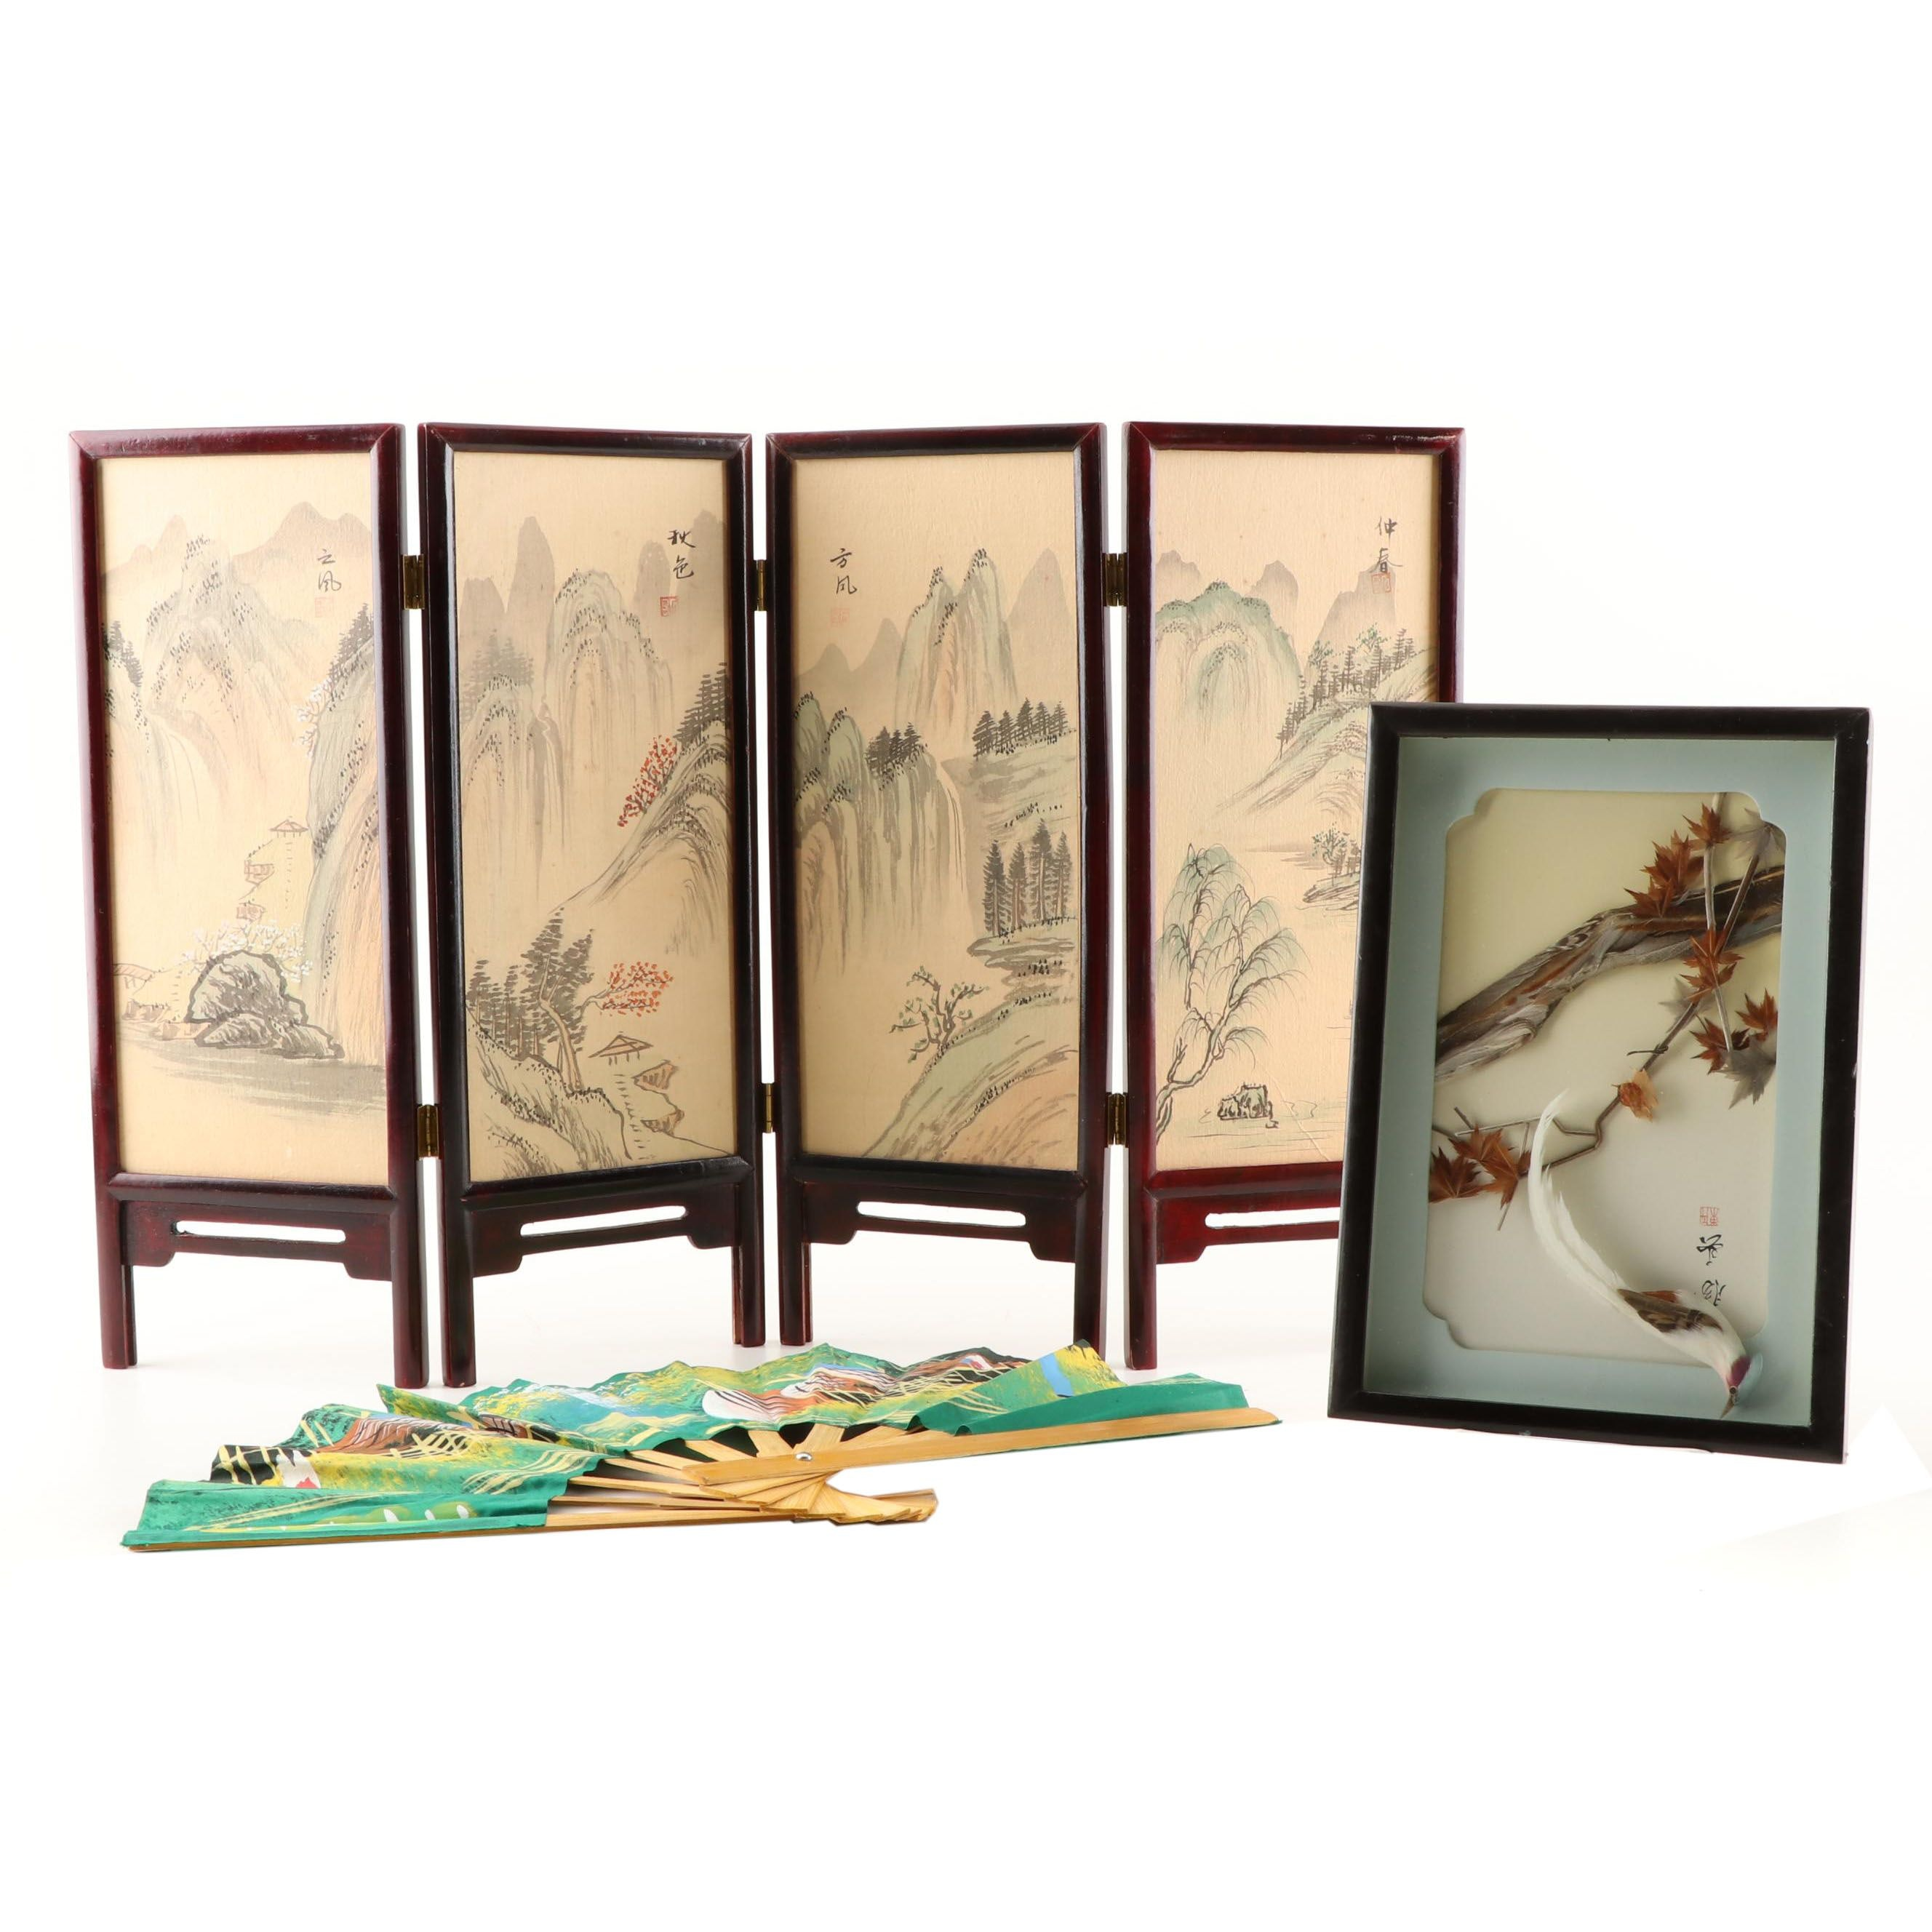 Miniature Chinese Silk Screen and Wall Art